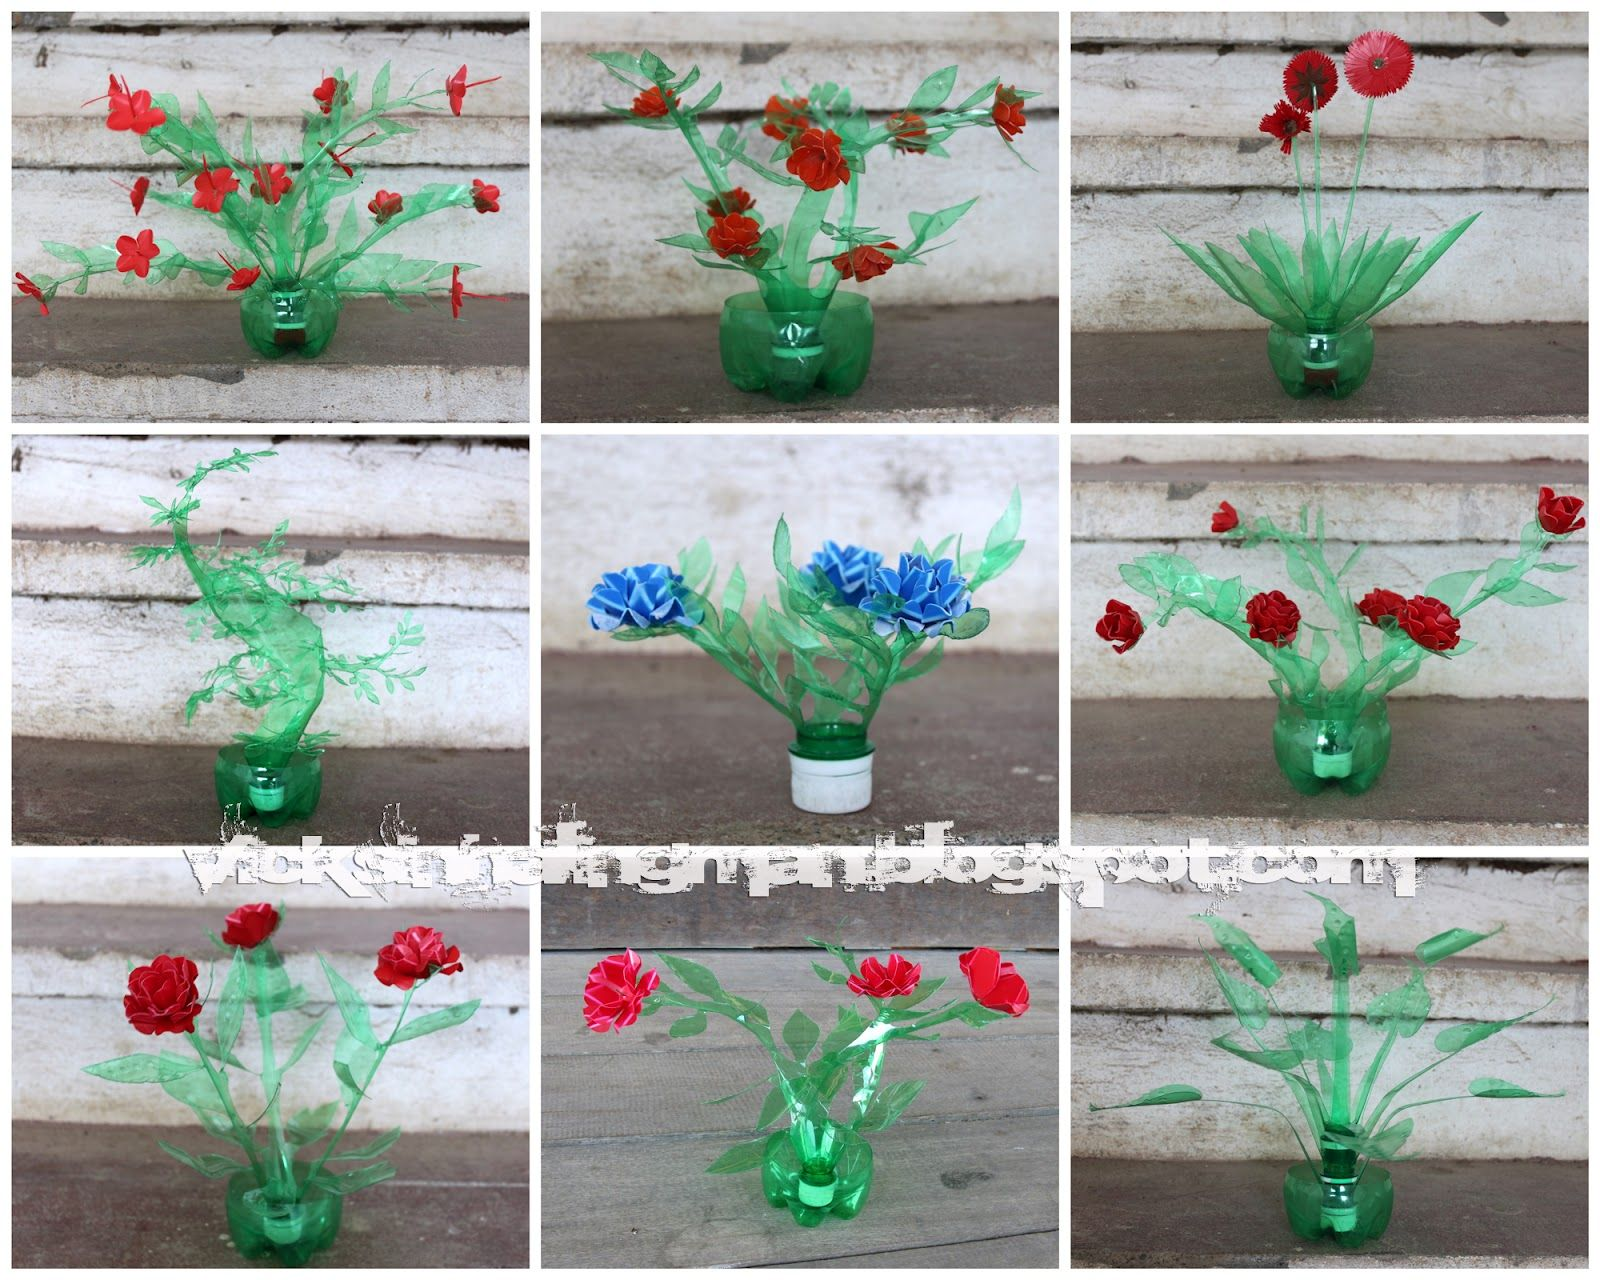 Recycled plastic bottle flowers making art out of junk for Art made from plastic bottles